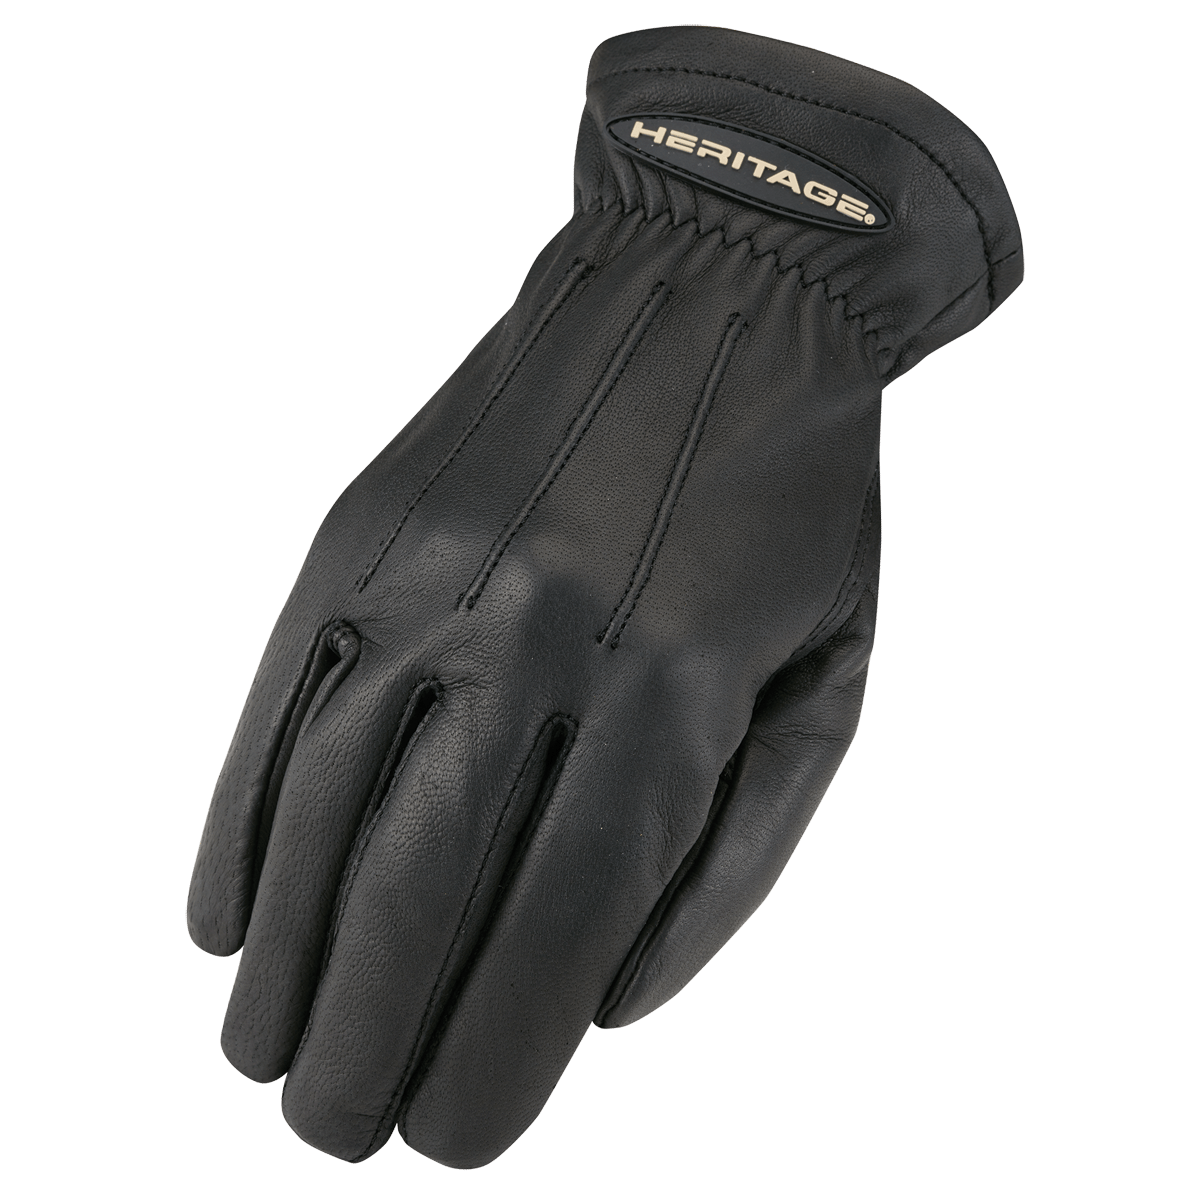 uploads gloves gloves PNG80342 4